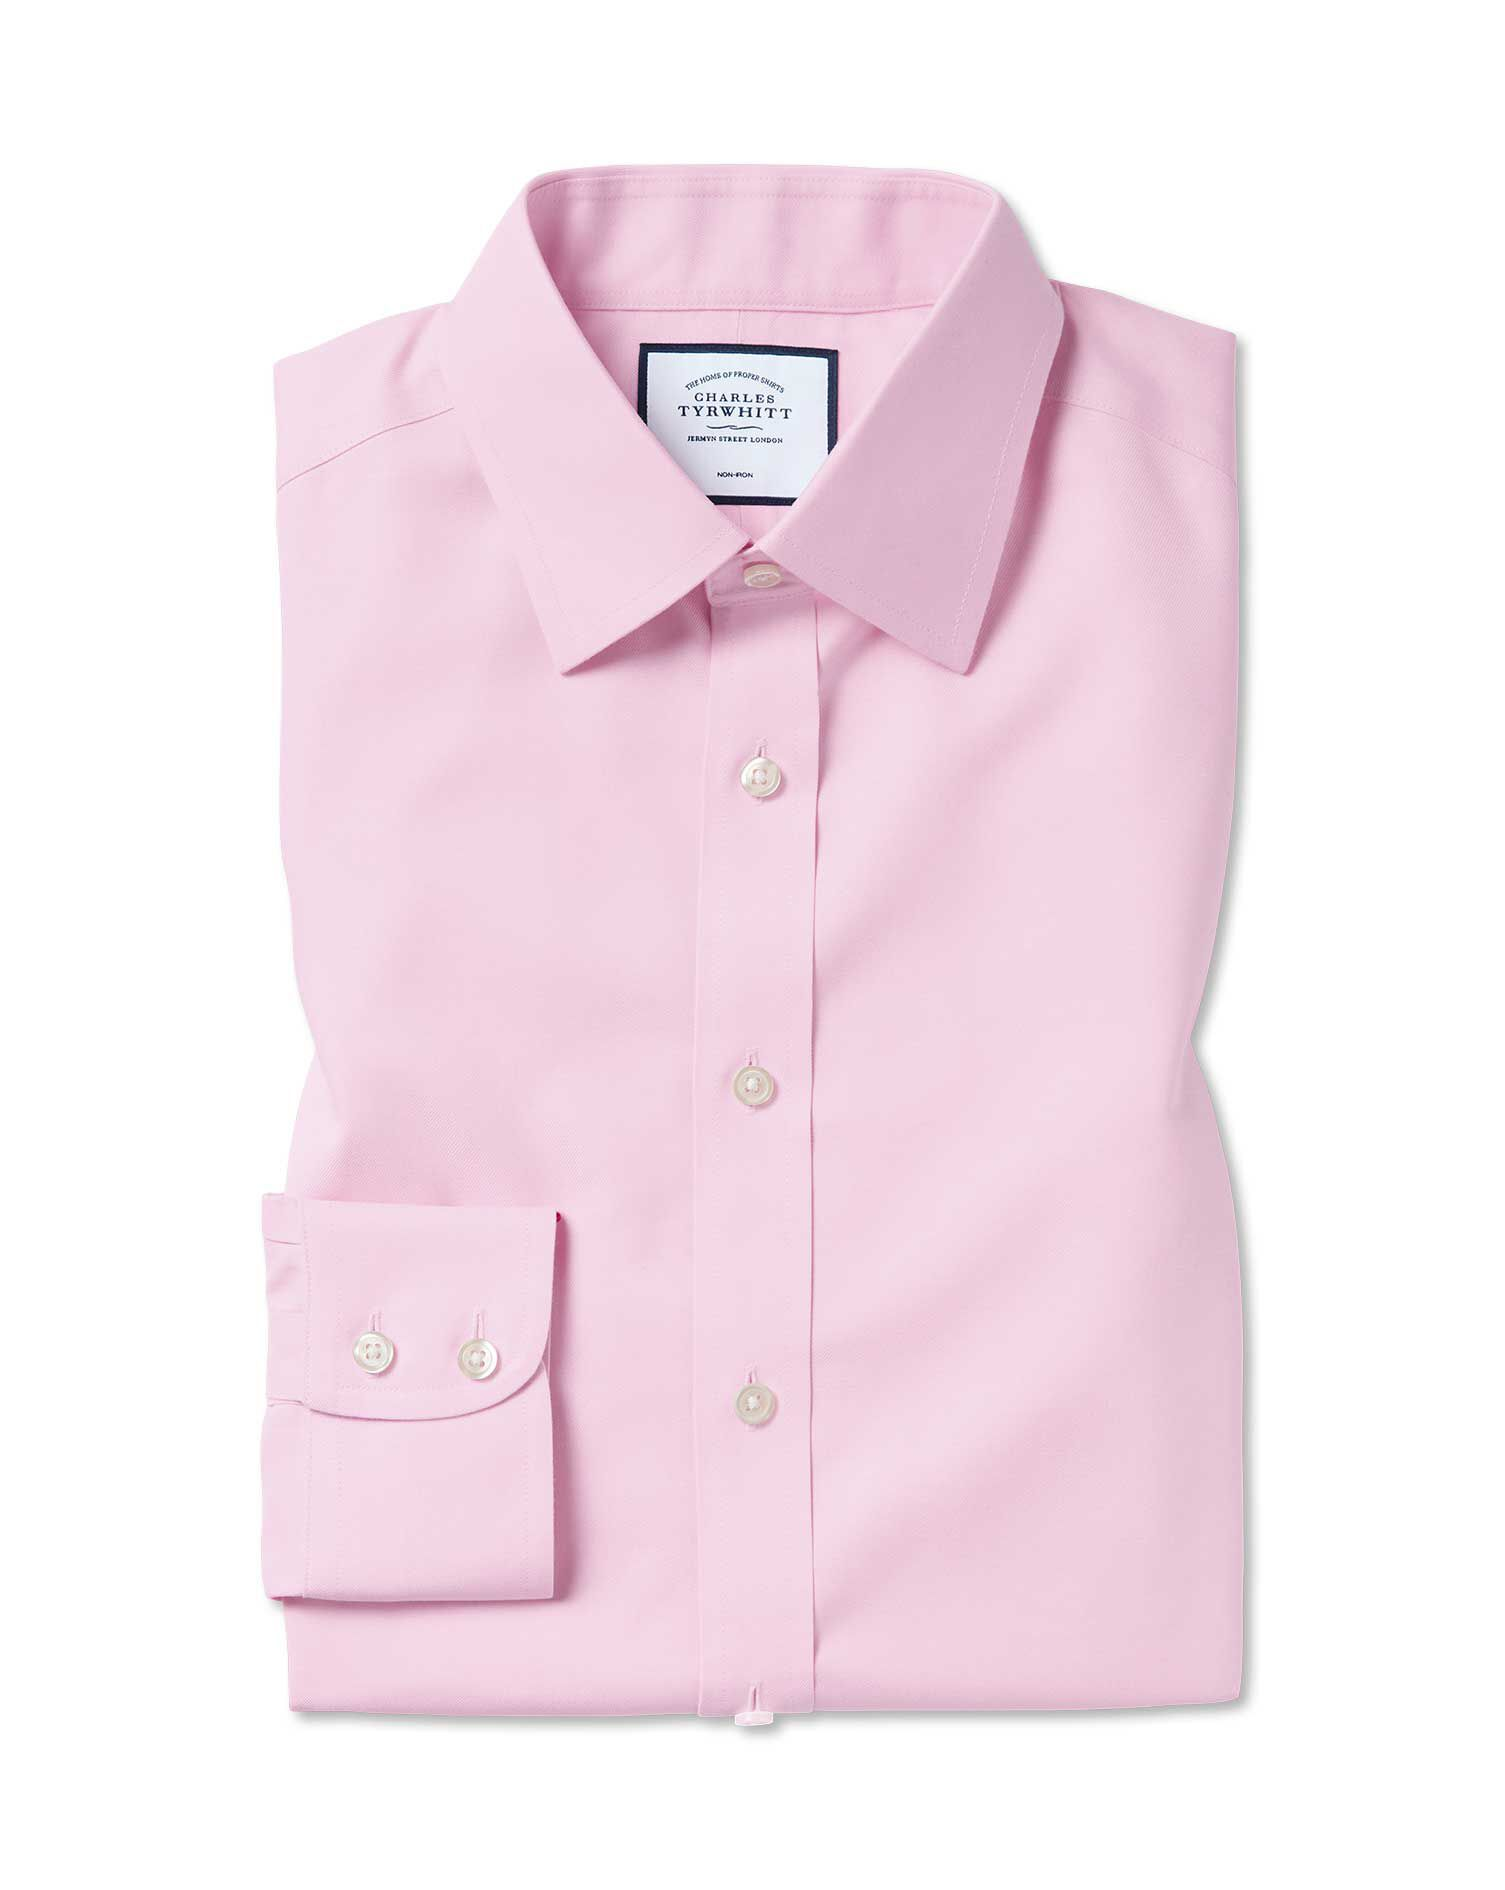 Slim Fit Non-Iron Twill Pink Cotton Formal Shirt Double Cuff Size 15/33 by Charles Tyrwhitt